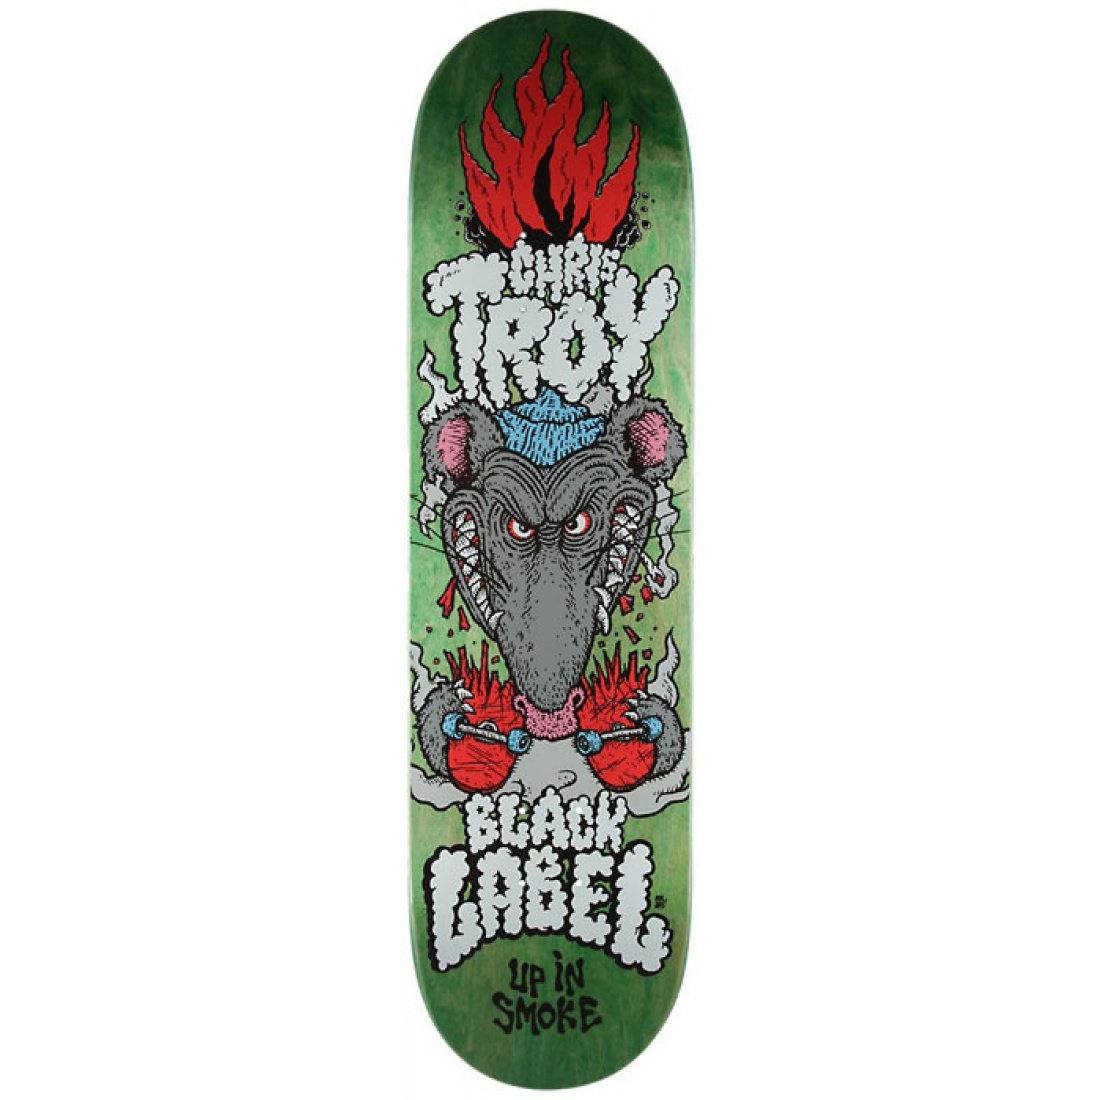 BL-Up In Smoke Troy 8.25 Deck